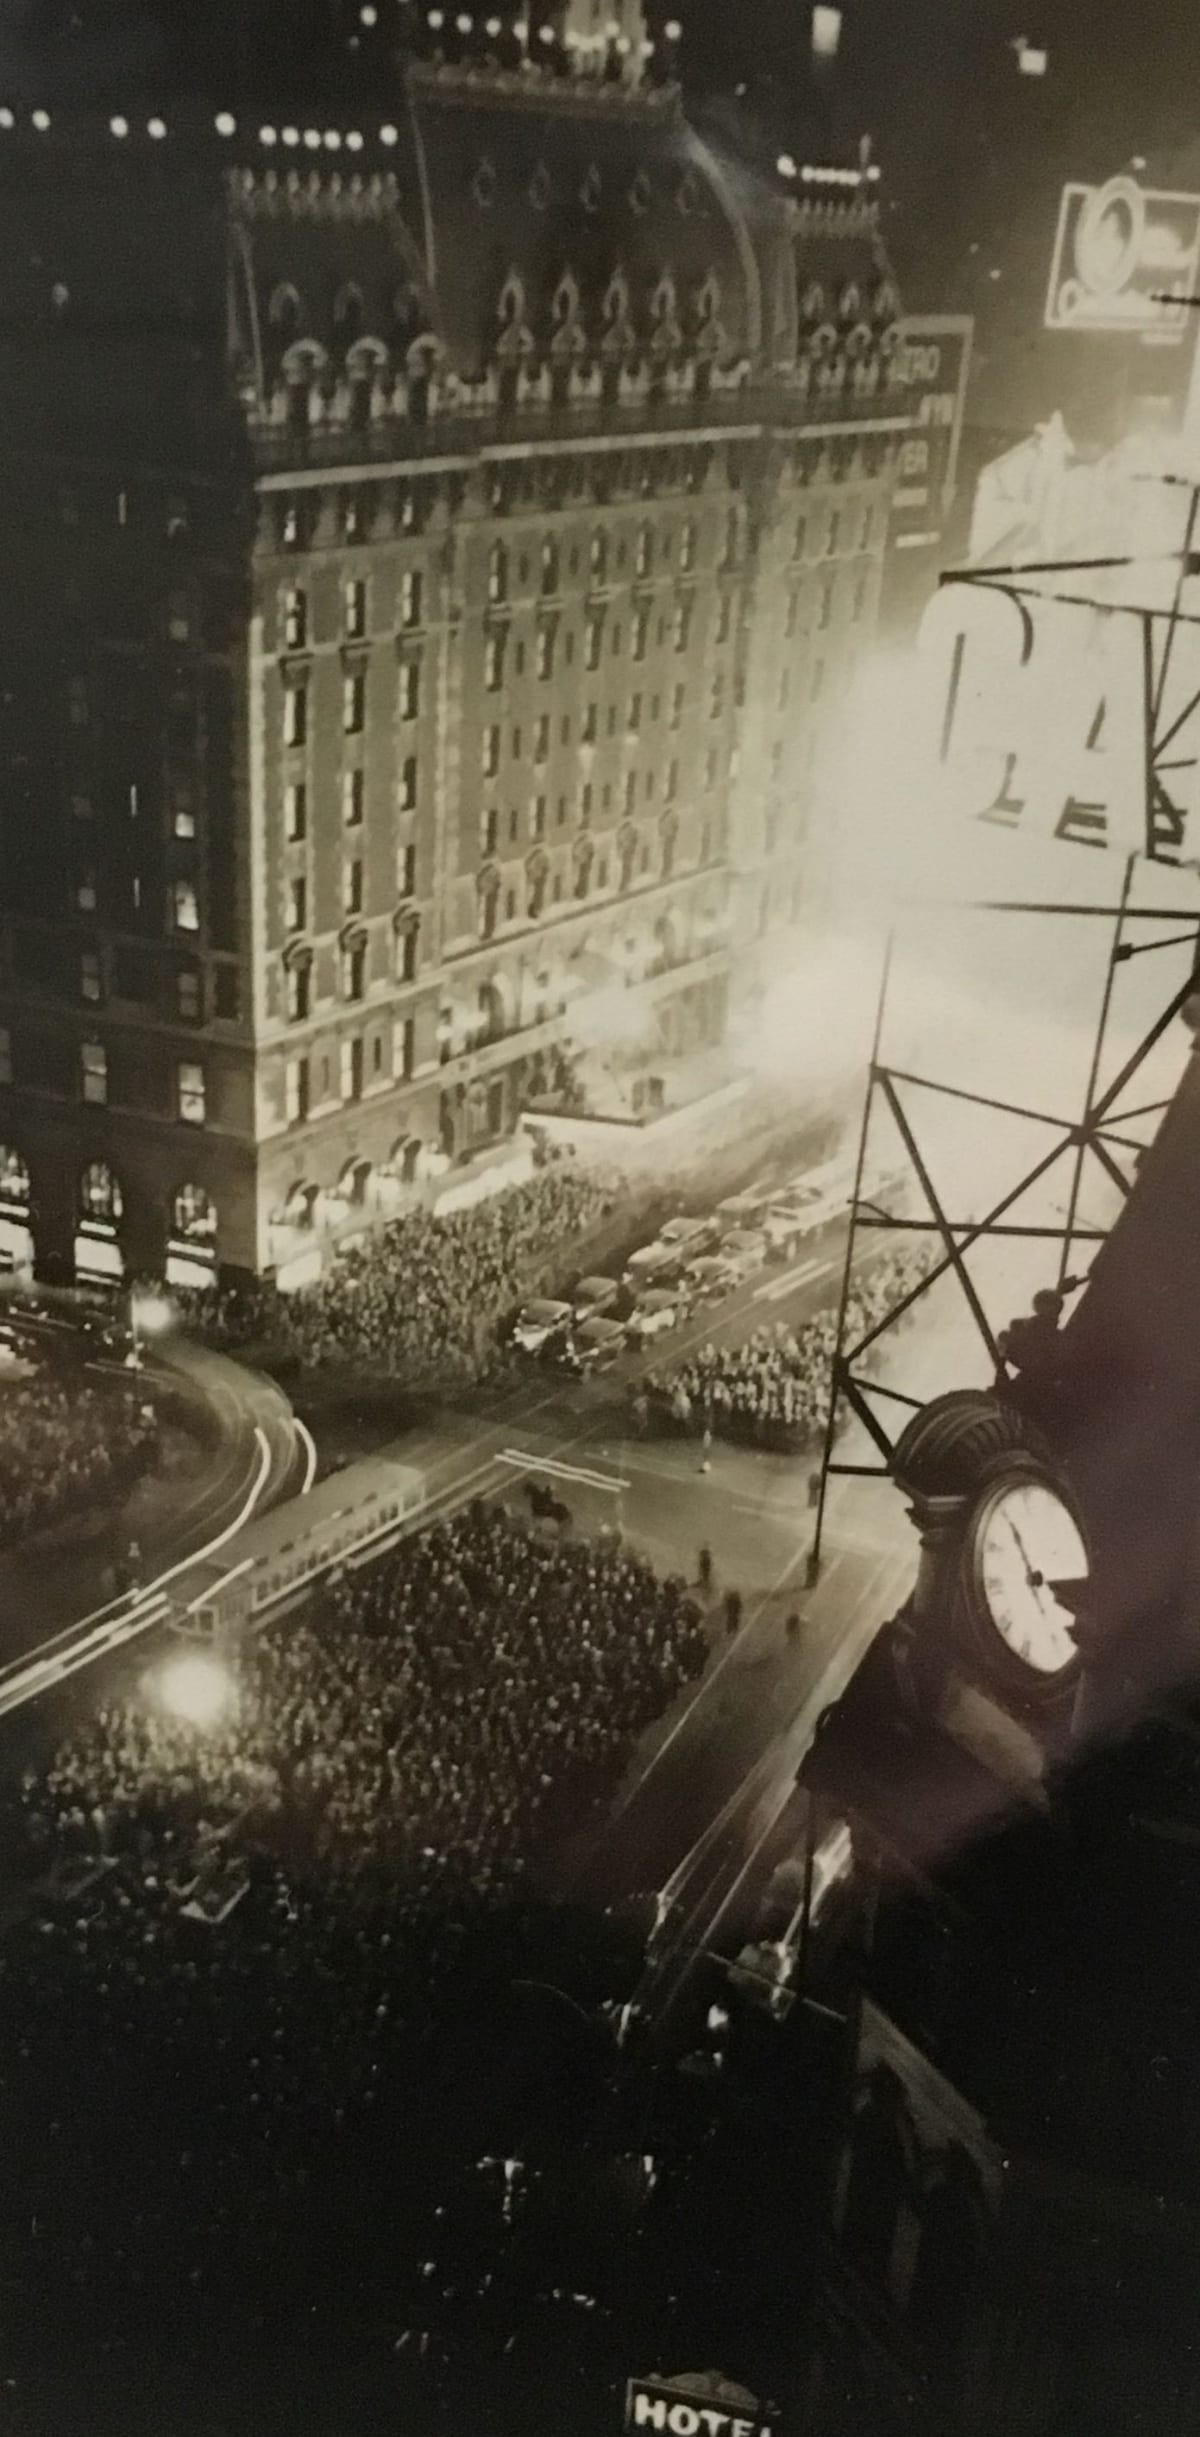 Fred Zinnemann Election Night for Franklin D. Roosevelt, Times Square, 1932 Vintage gelatin silver print 4 1/4 x 2 3/8 inches